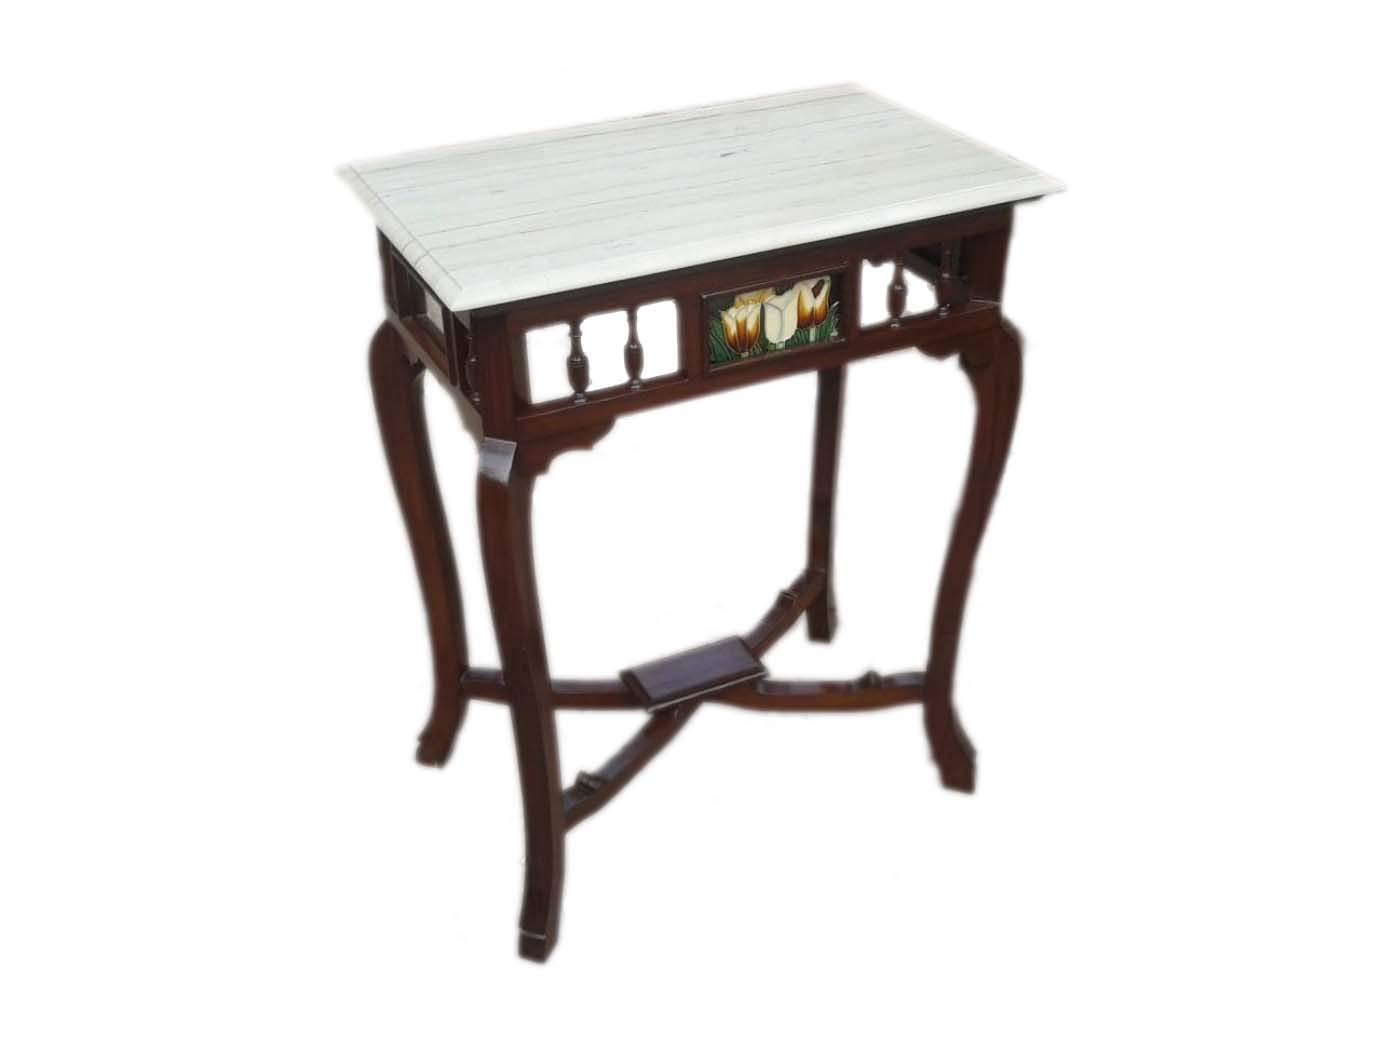 Solid Teak Wood Rectangle Shape Antique Look Console Table with White Marble Top Size : 30x24x15 (HxWxD)